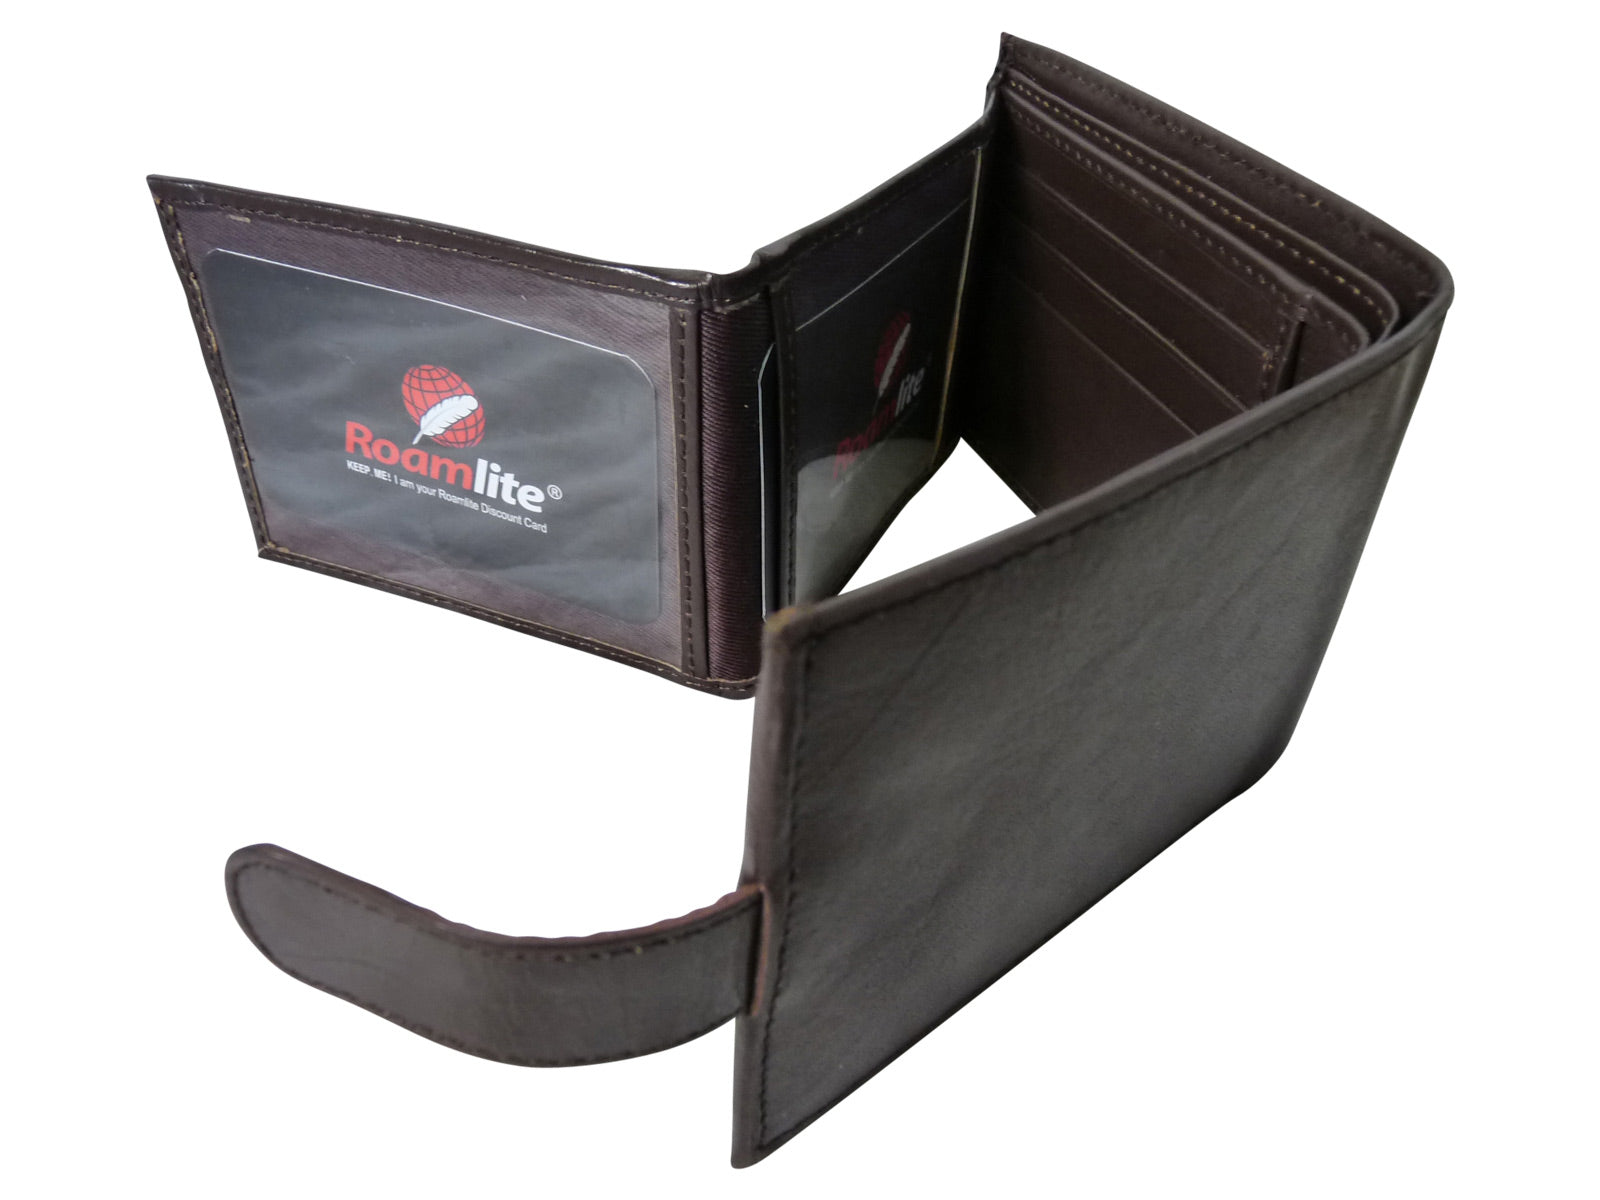 Black Leather Cards Notes and Coins Wallet RL374DB inside